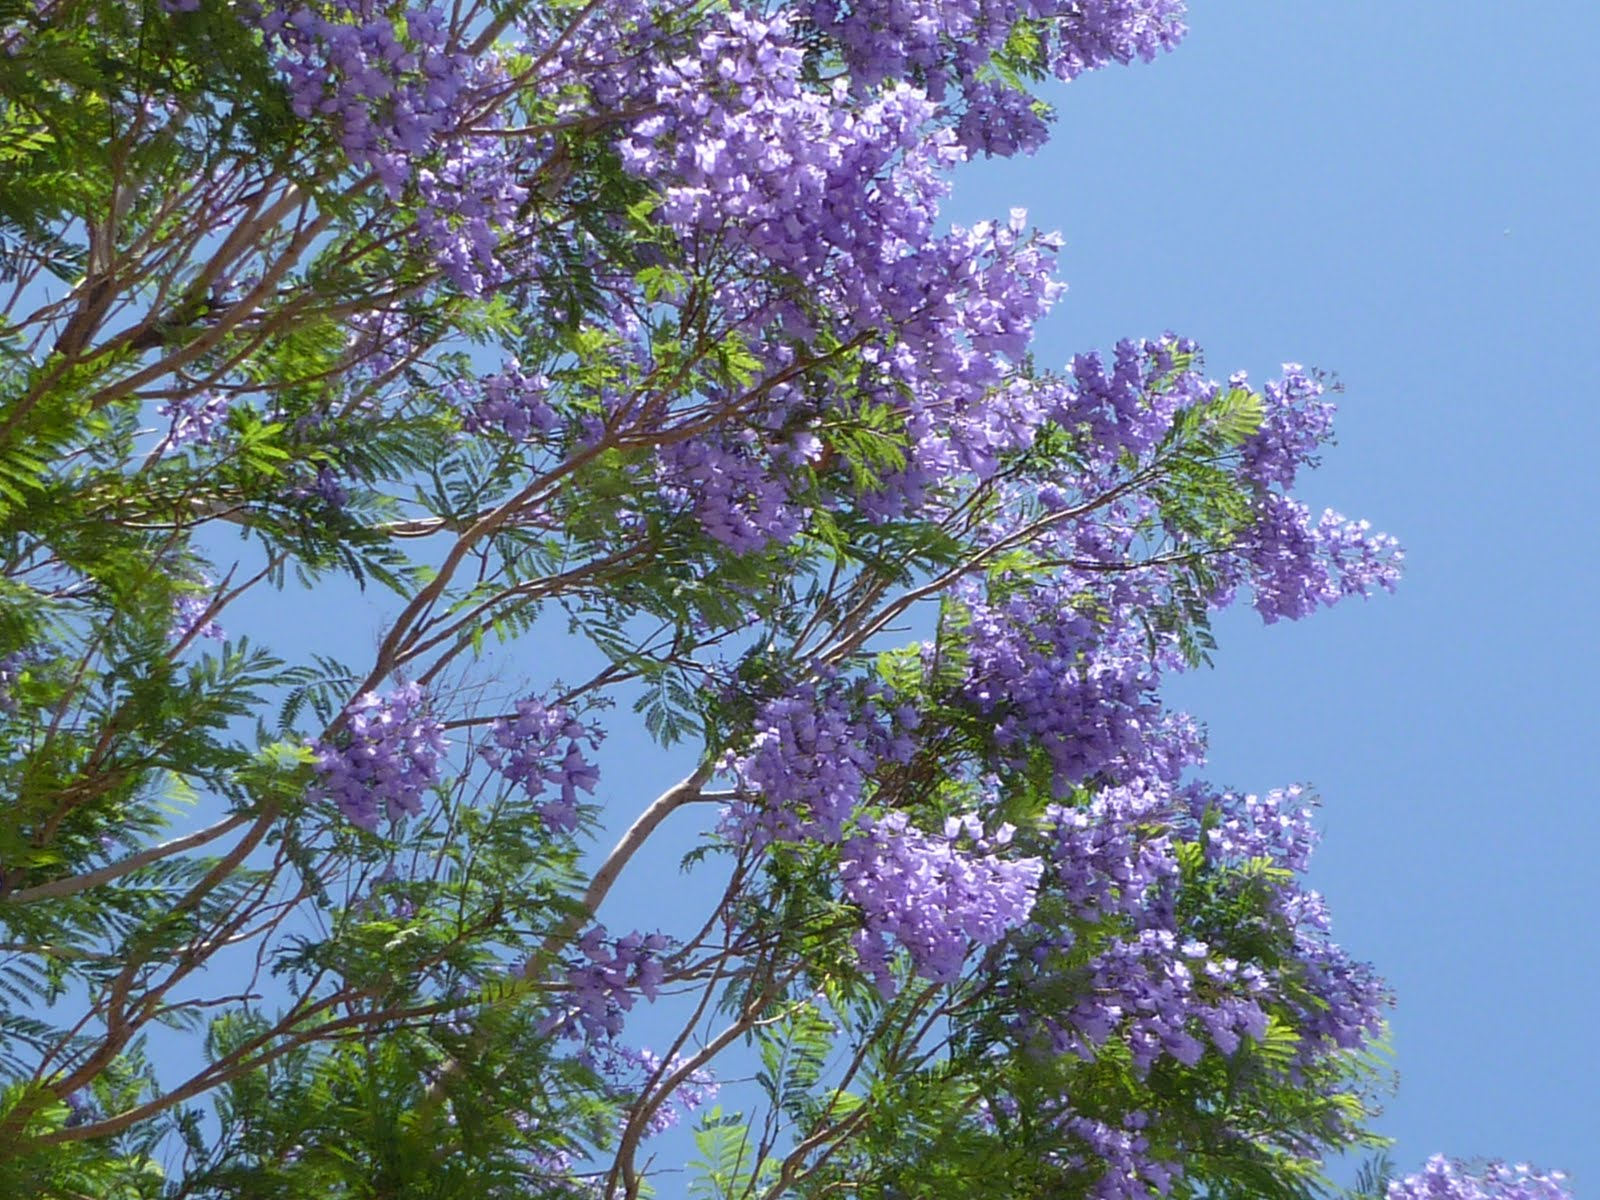 The splendidly imperfect miss m like buttah we are the house with the purple flowers in my defense the flowers are only growing on the top half of this very tall tree so i couldnt see them without izmirmasajfo